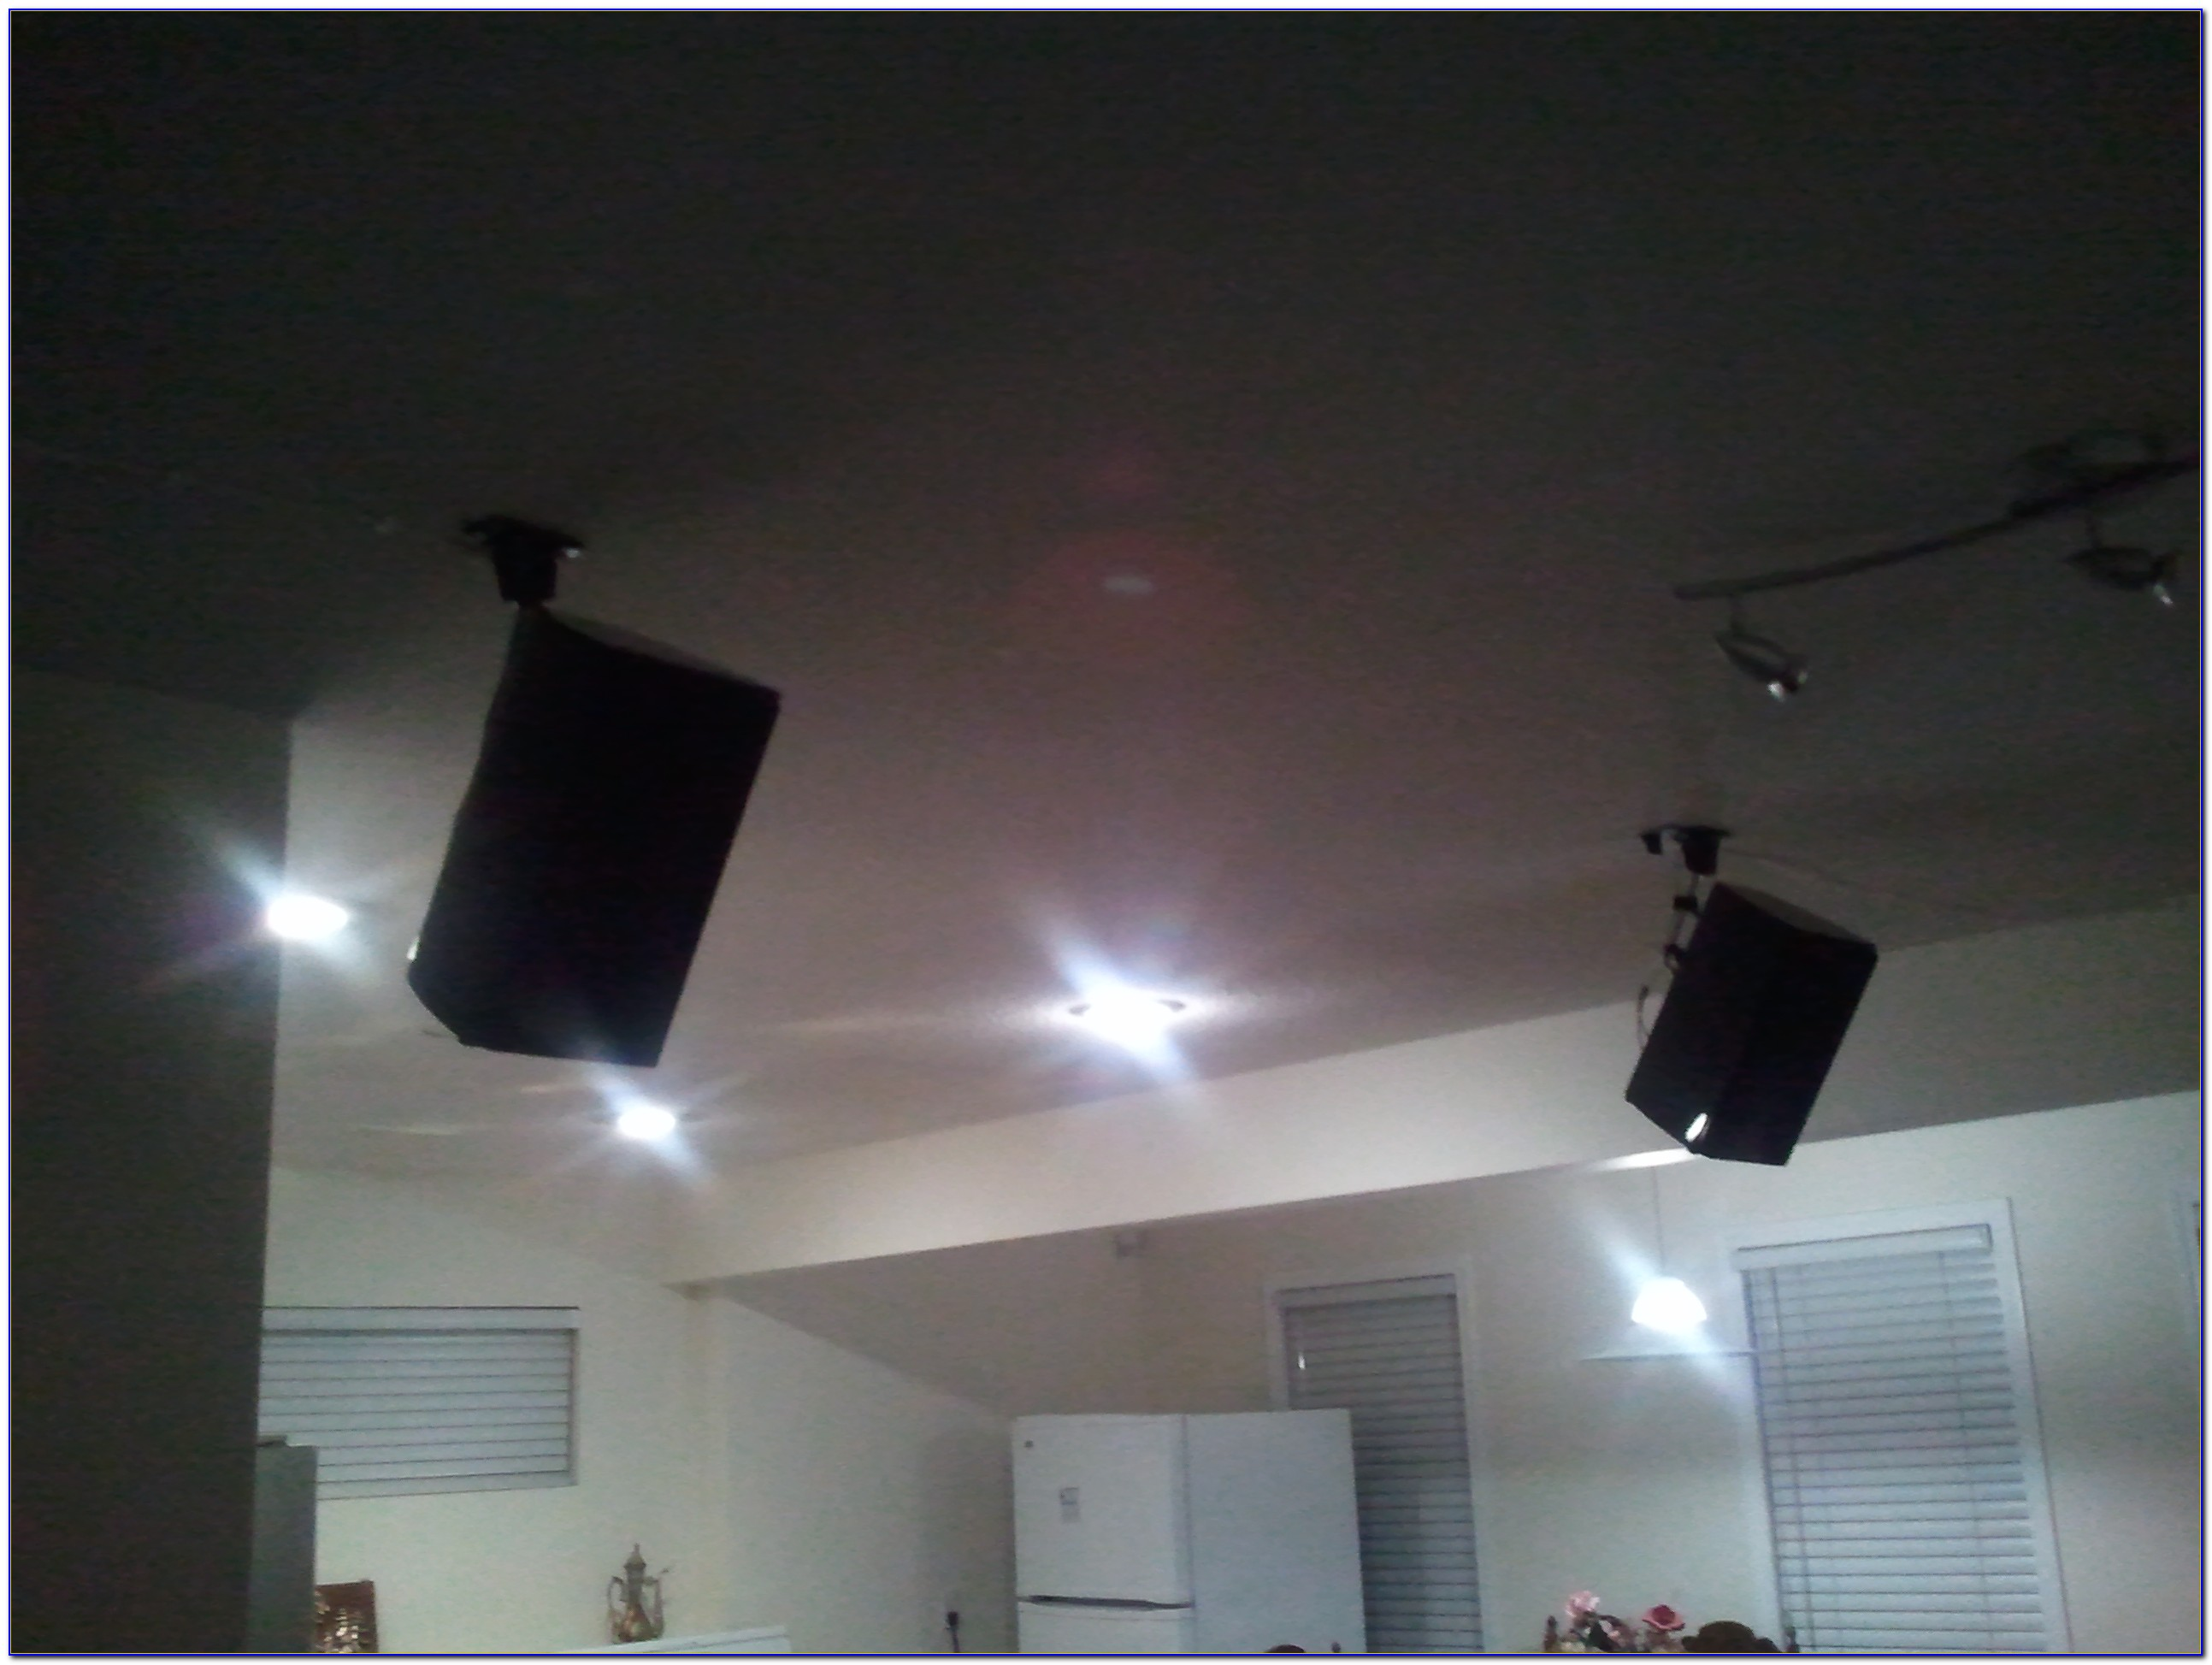 Surround Sound Speakers In Ceiling